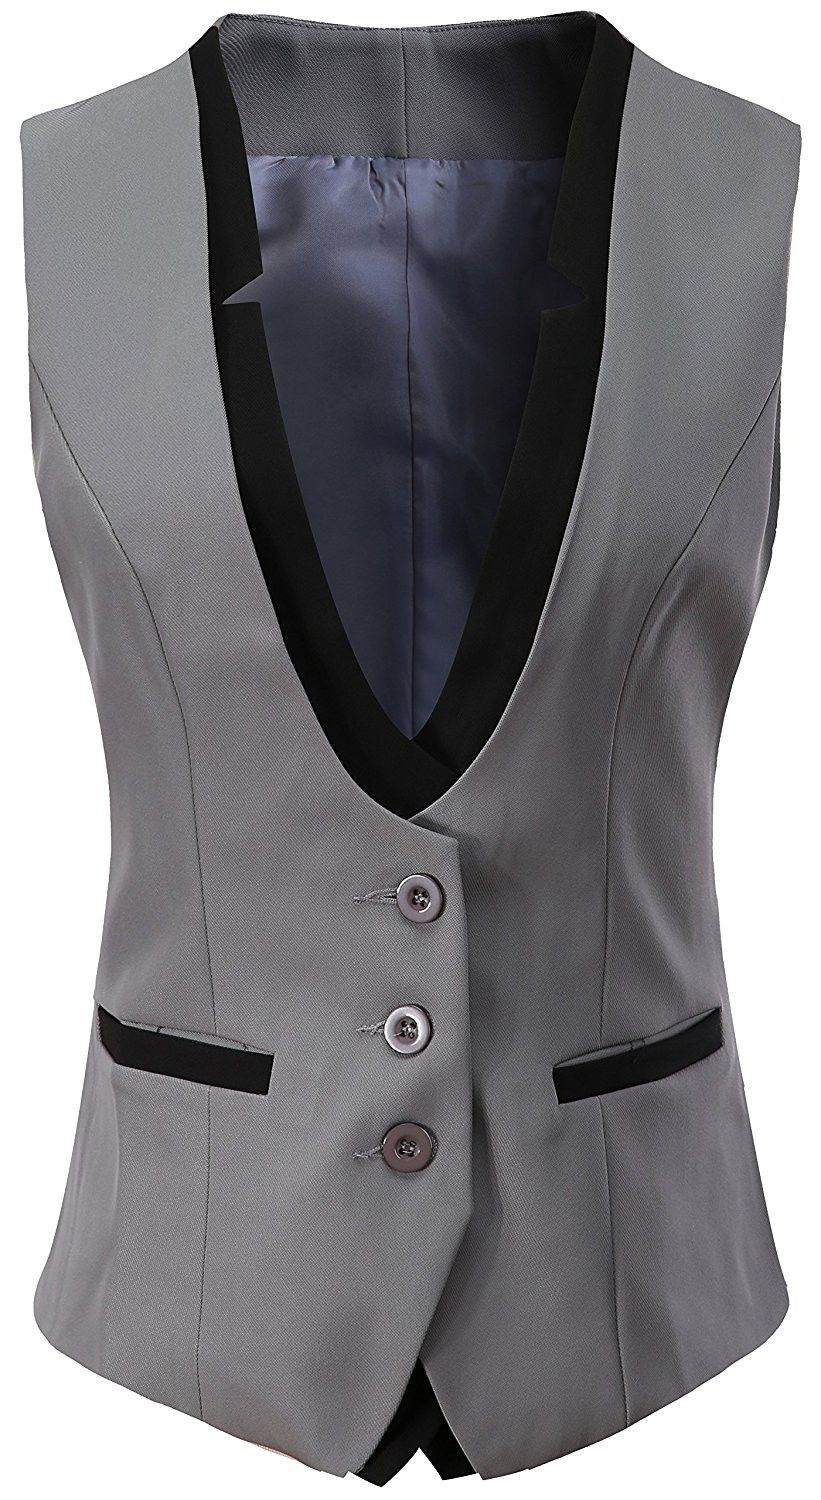 Women's Clothing, Coats, Jackets & Vests, Vests, Women V-Neck Slim Fit Business …